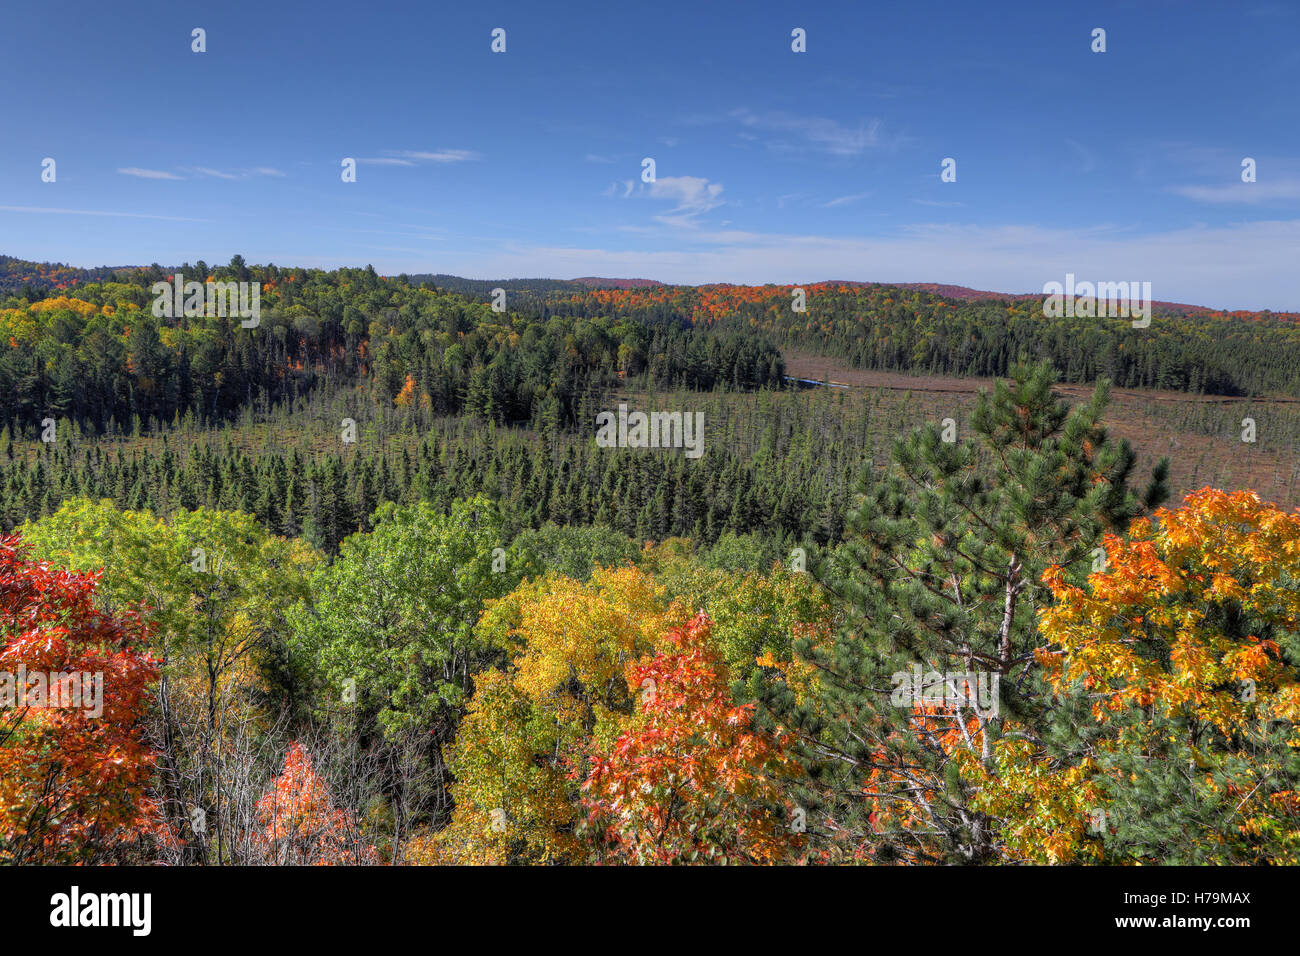 An Algonquin forest overlook in fall - Stock Image